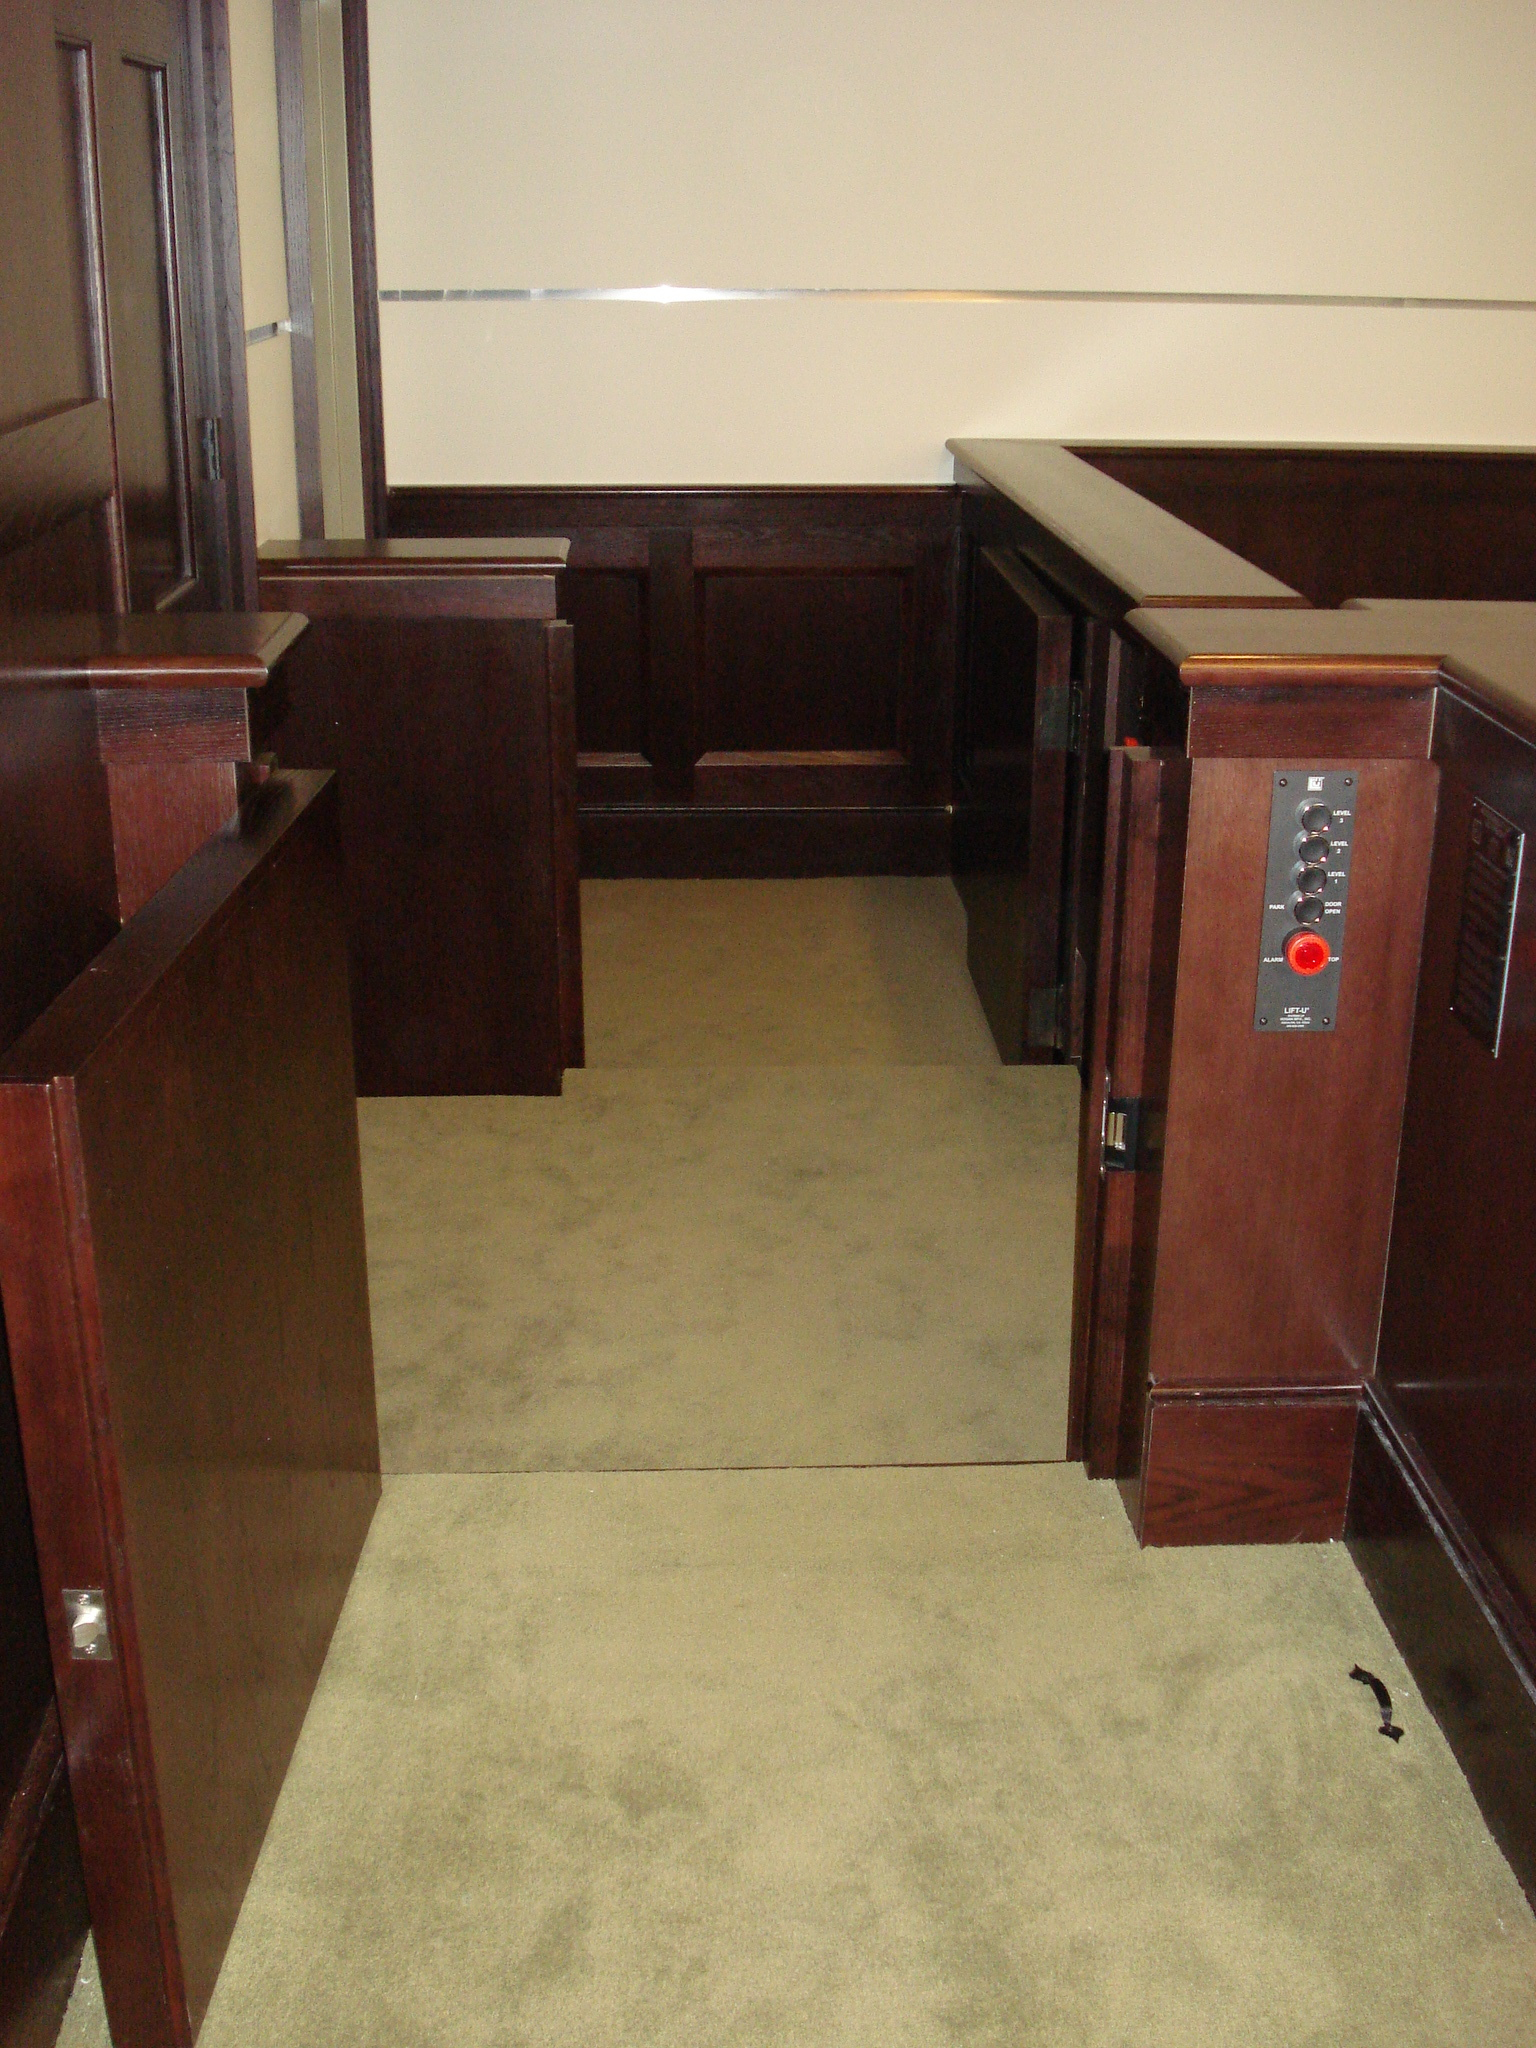 View of the lift from the judge's bench. Lift positioned at the witness or intermediate level with both doors opened. Lift encased in wood millwork blending in with courtroom millwork. Lift is readily available and independently operable.